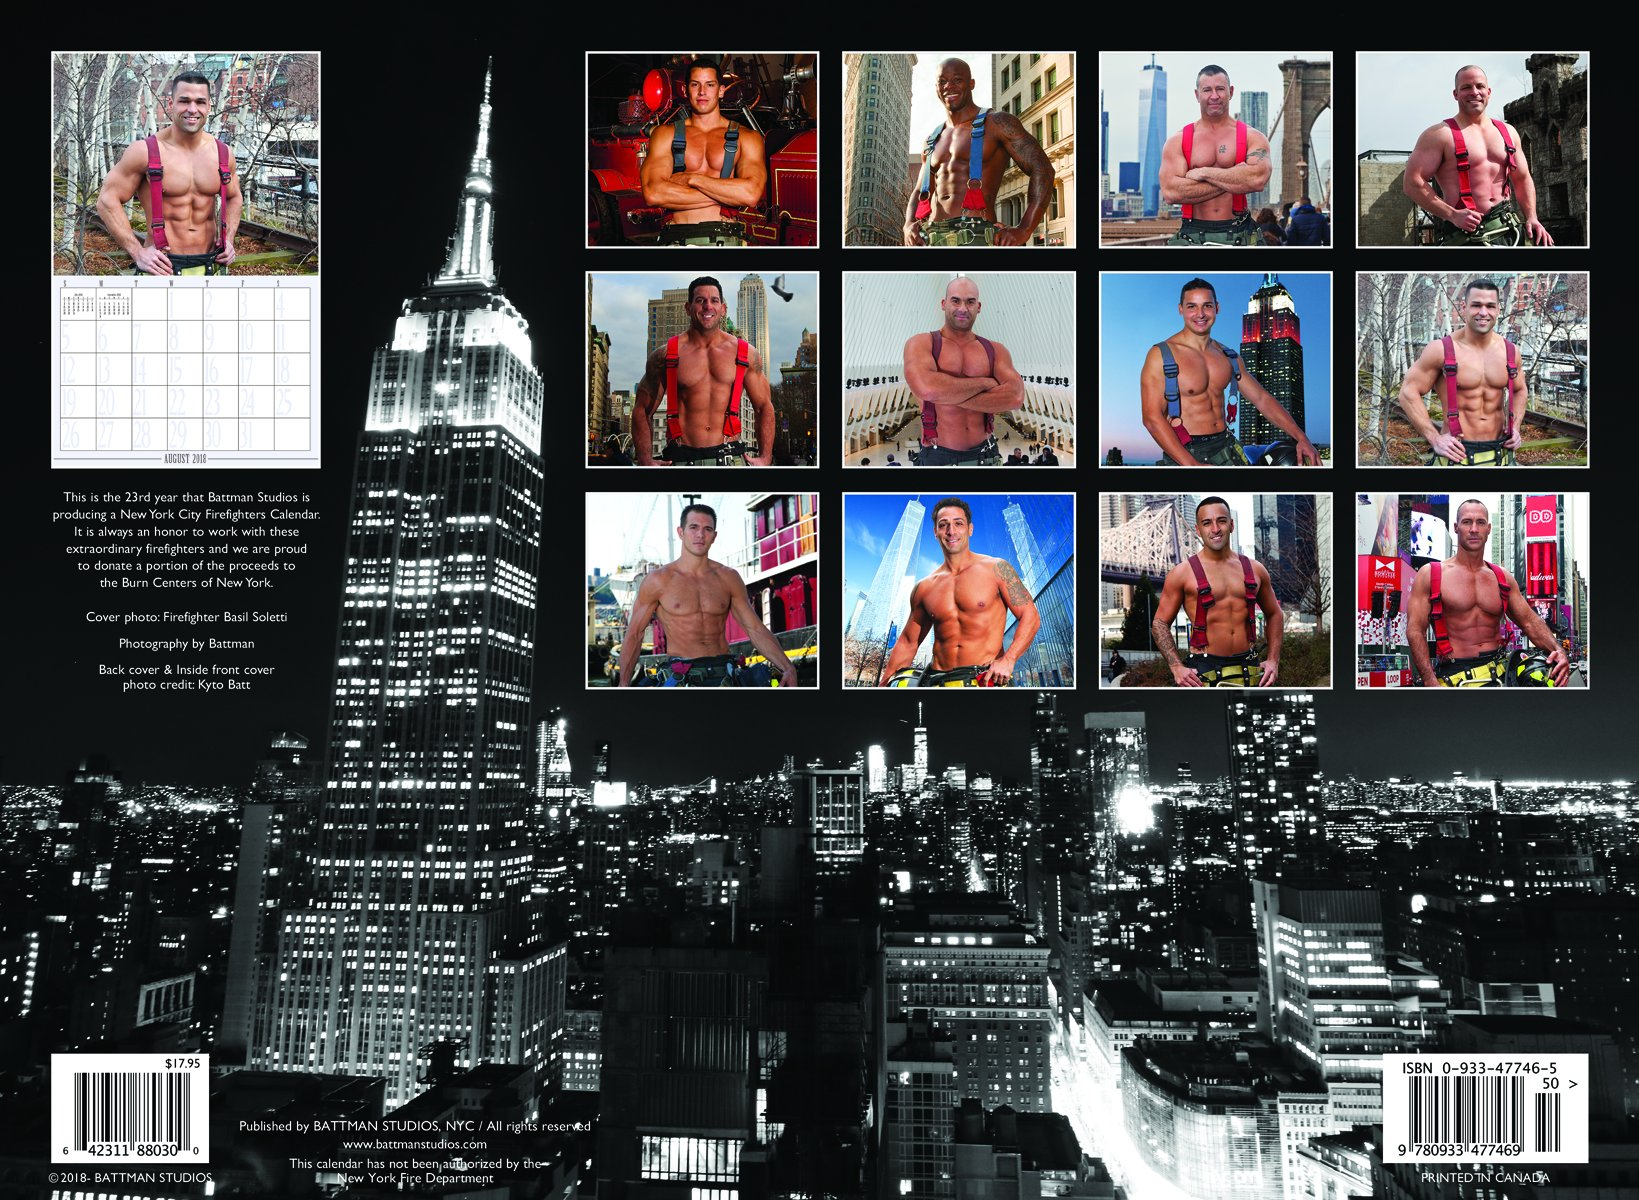 2018 new york city firefighters calendar battman 9780933477469 amazoncom books